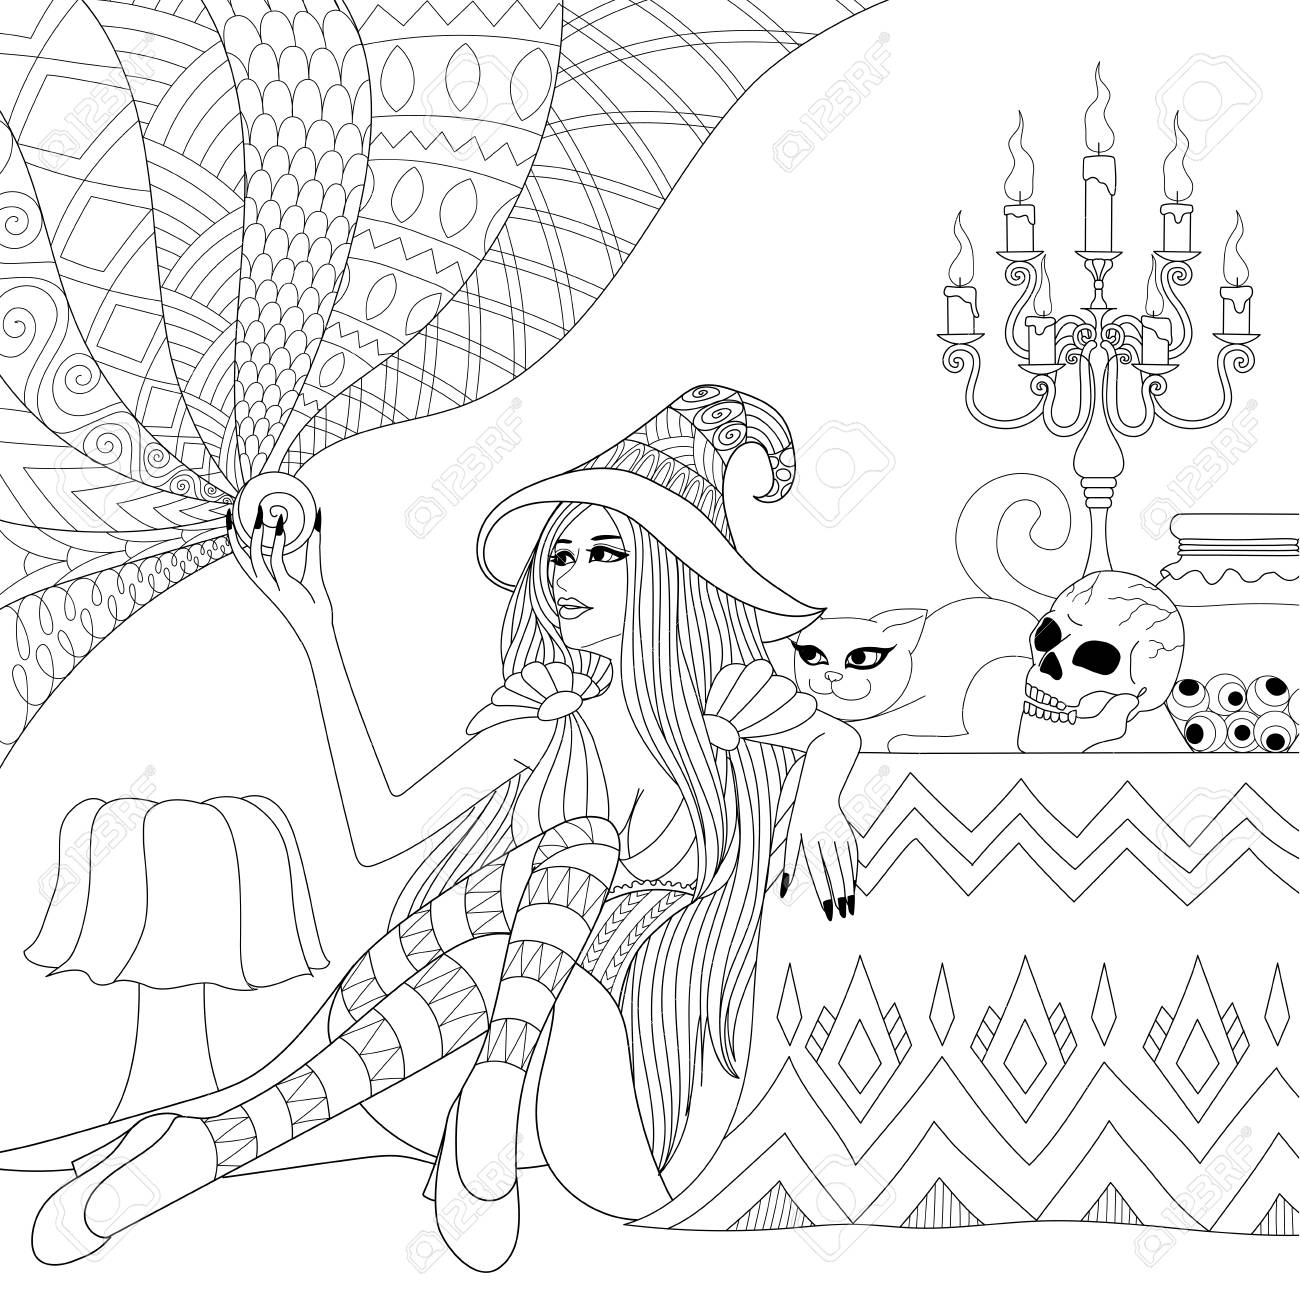 Colouring Pages Coloring Book For Adults Halloween Girl Or Royalty Free Cliparts Vectors And Stock Illustration Image 108275147